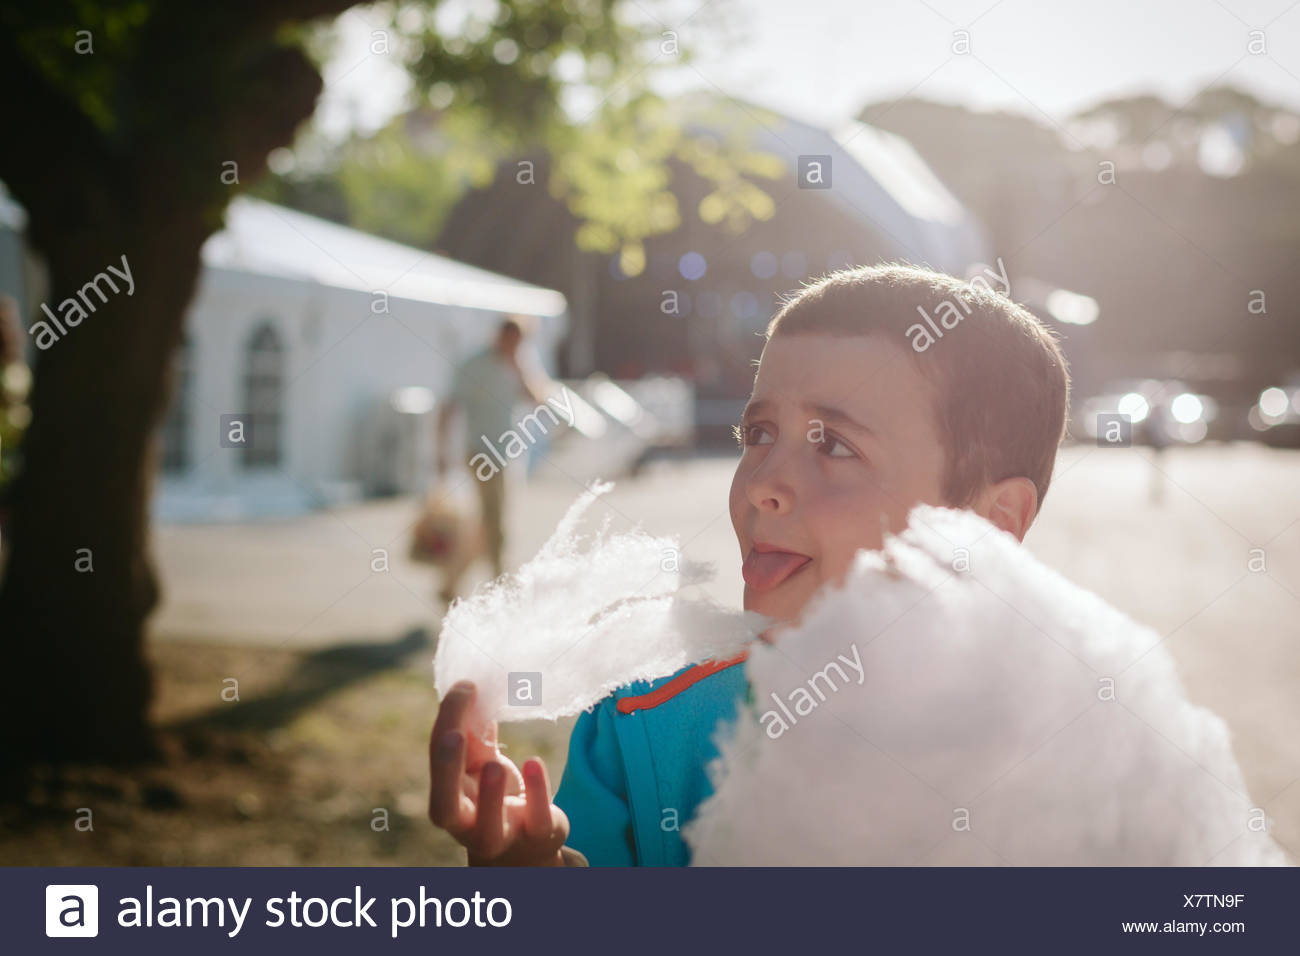 Boy Eating Candy Floss On Sunny Day - Stock Image